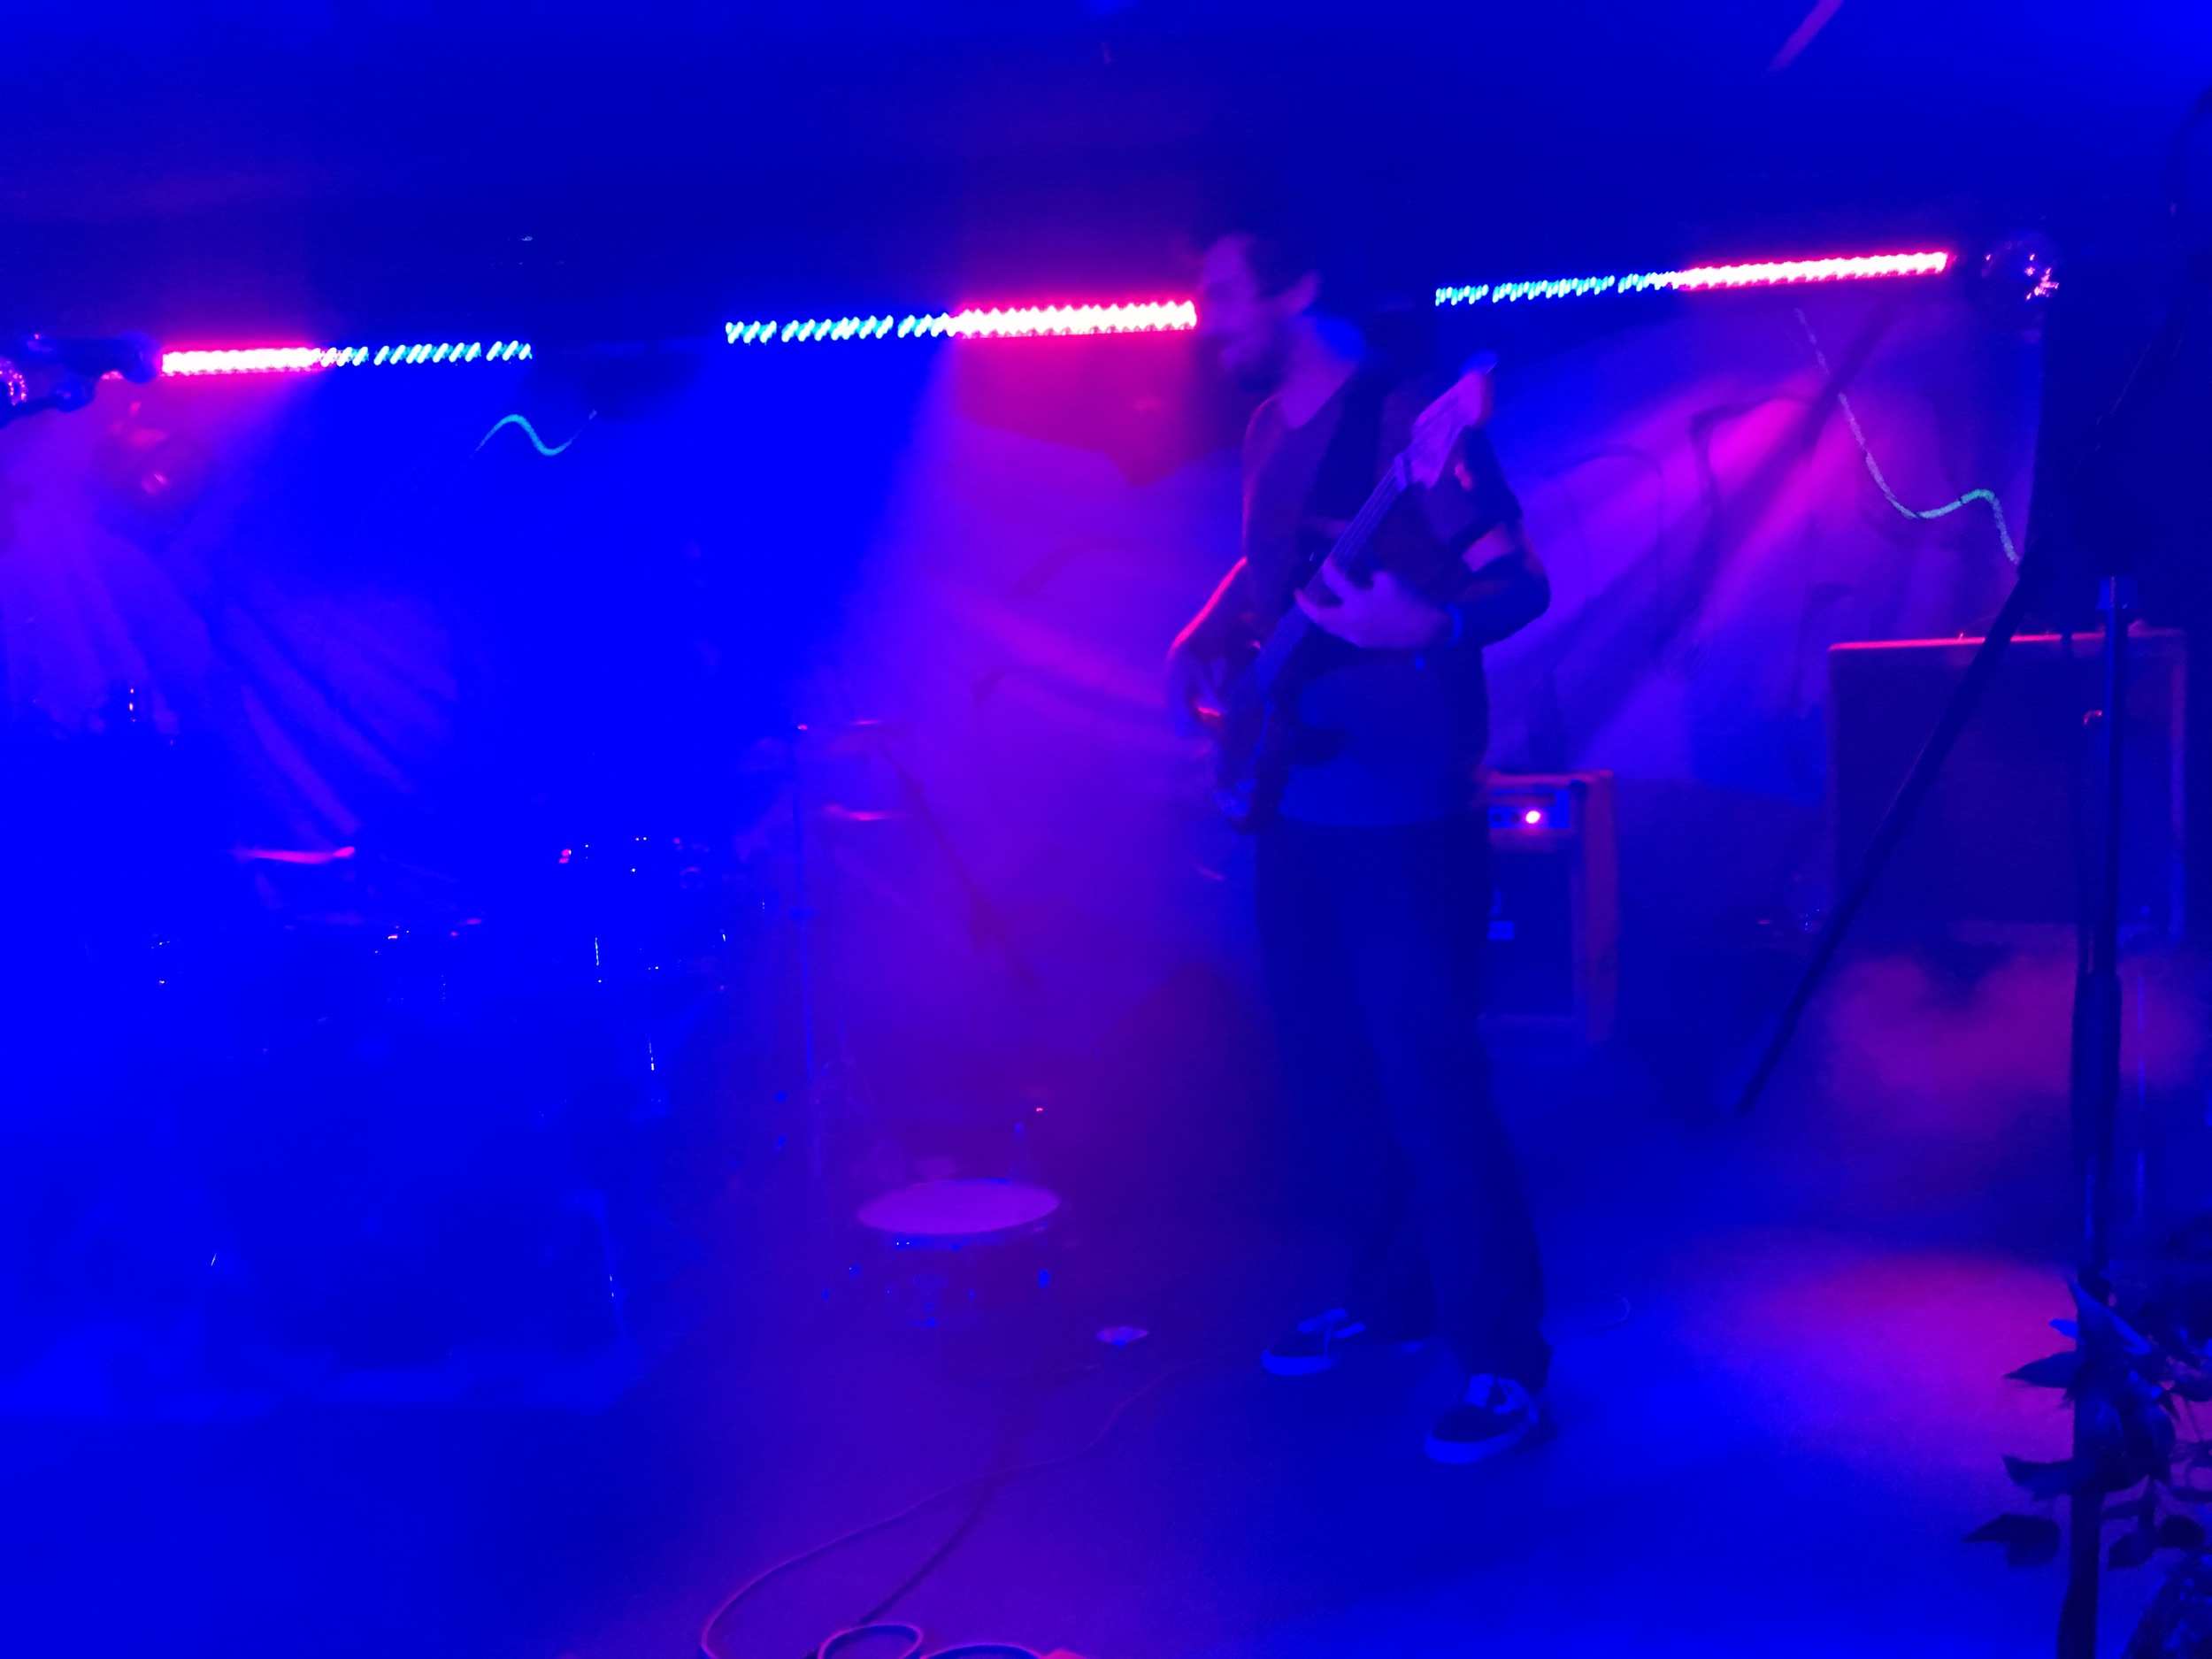 Got to see Alex perform with his amazing band!